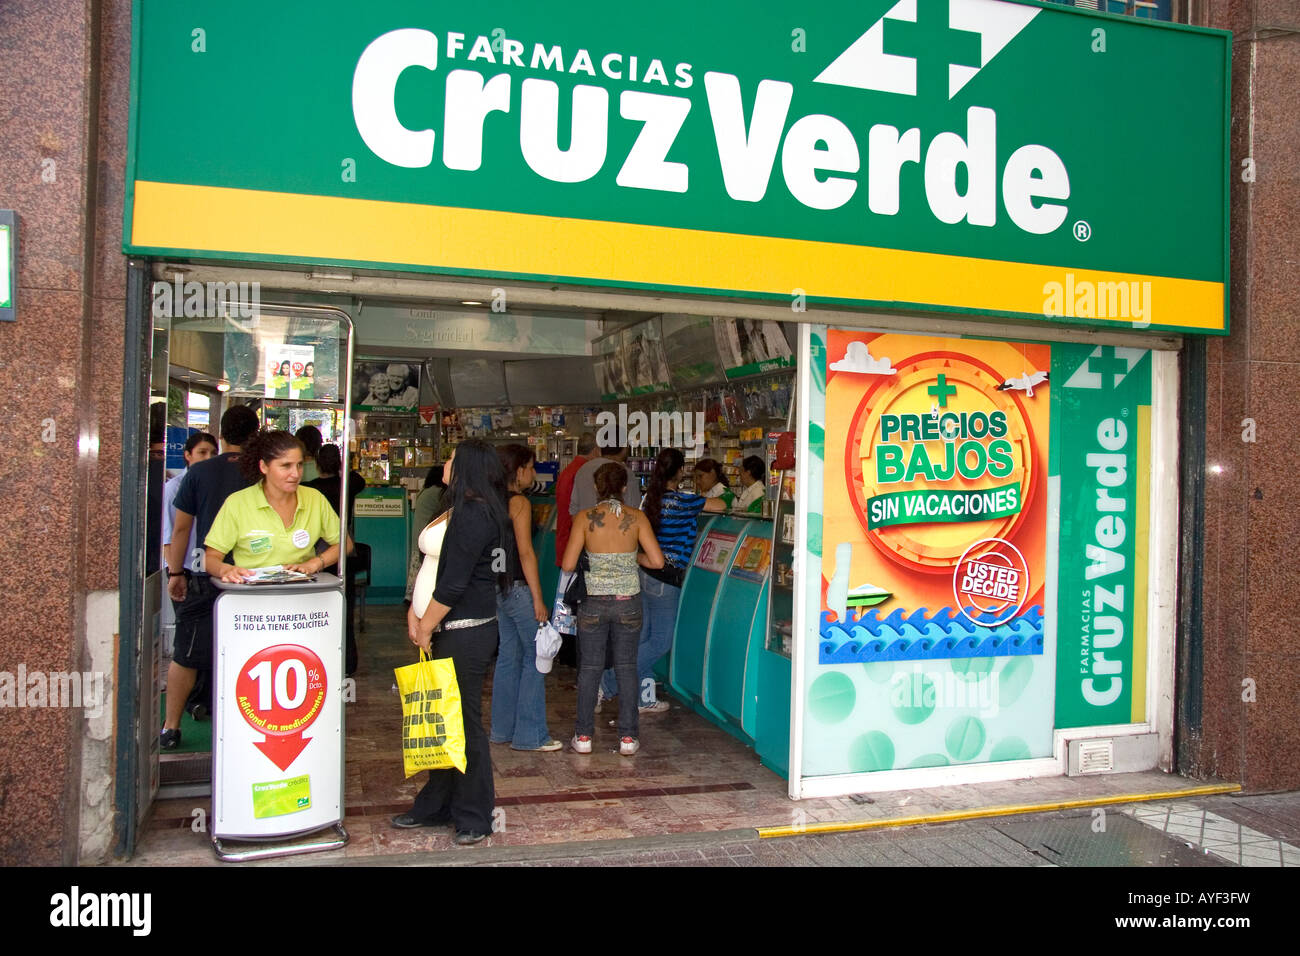 Storefront of a Cruz Verde pharmacy on the Paseo Ahumada